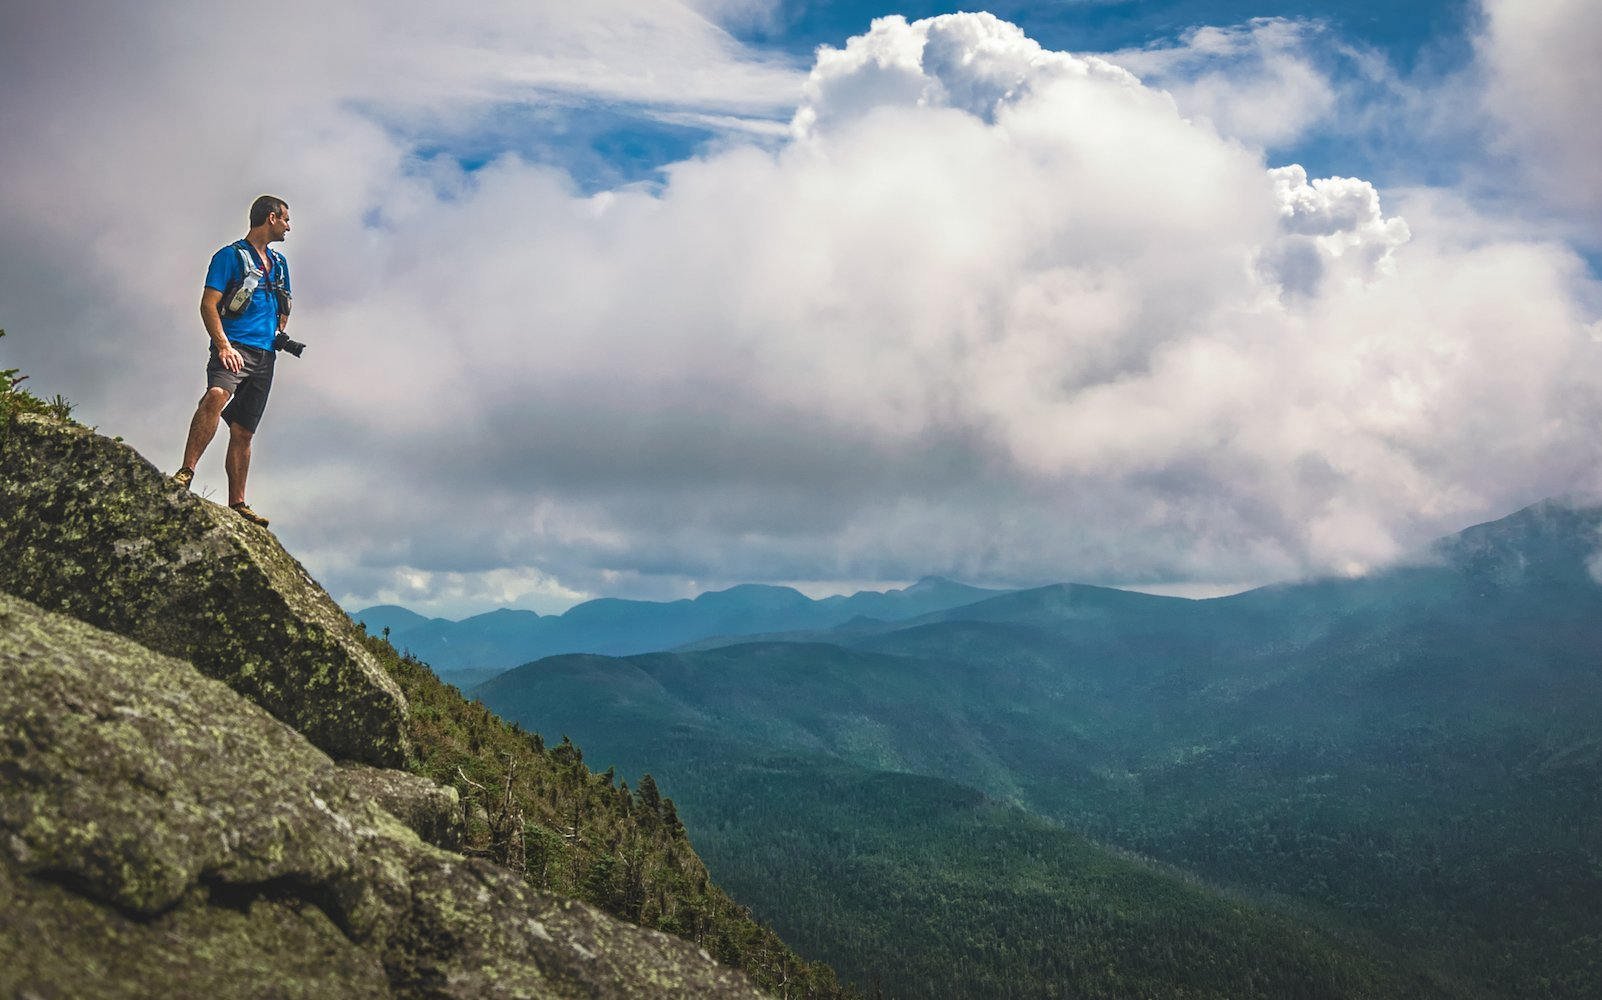 A Photographer's Perspective of The Mount Colden Loop | Pure Adirondacks